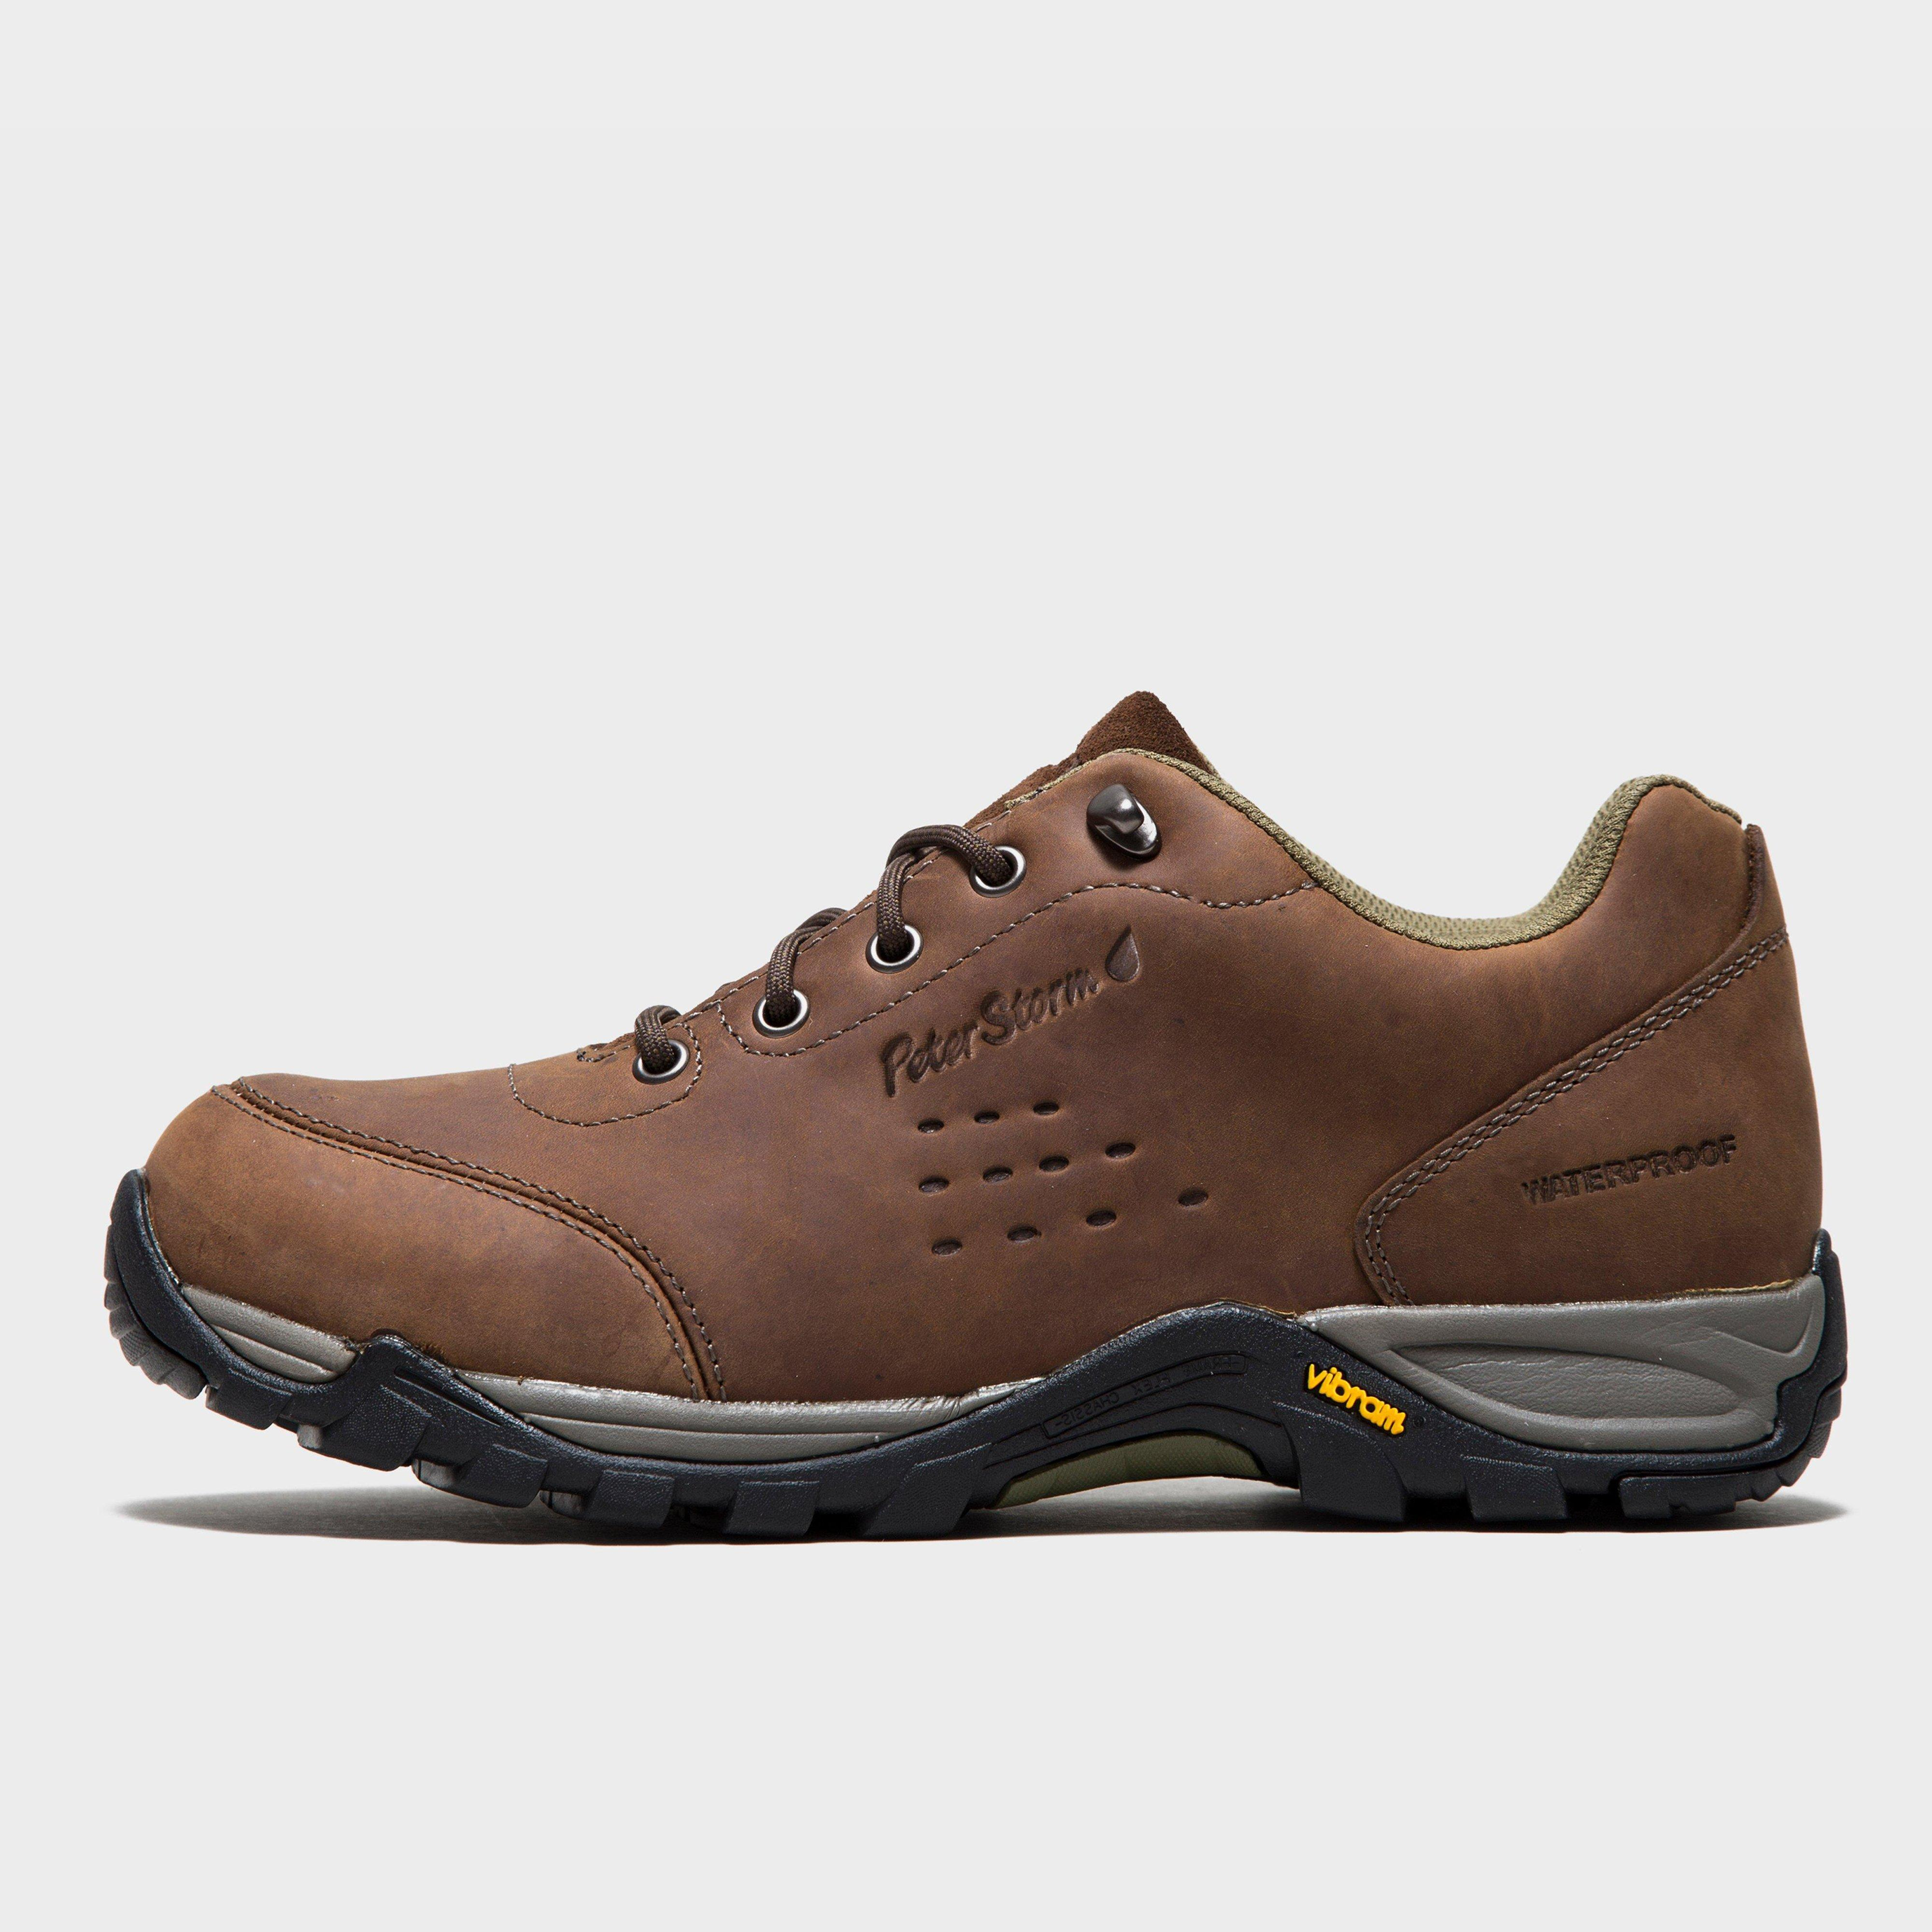 mens grizedale walking shoe prices and